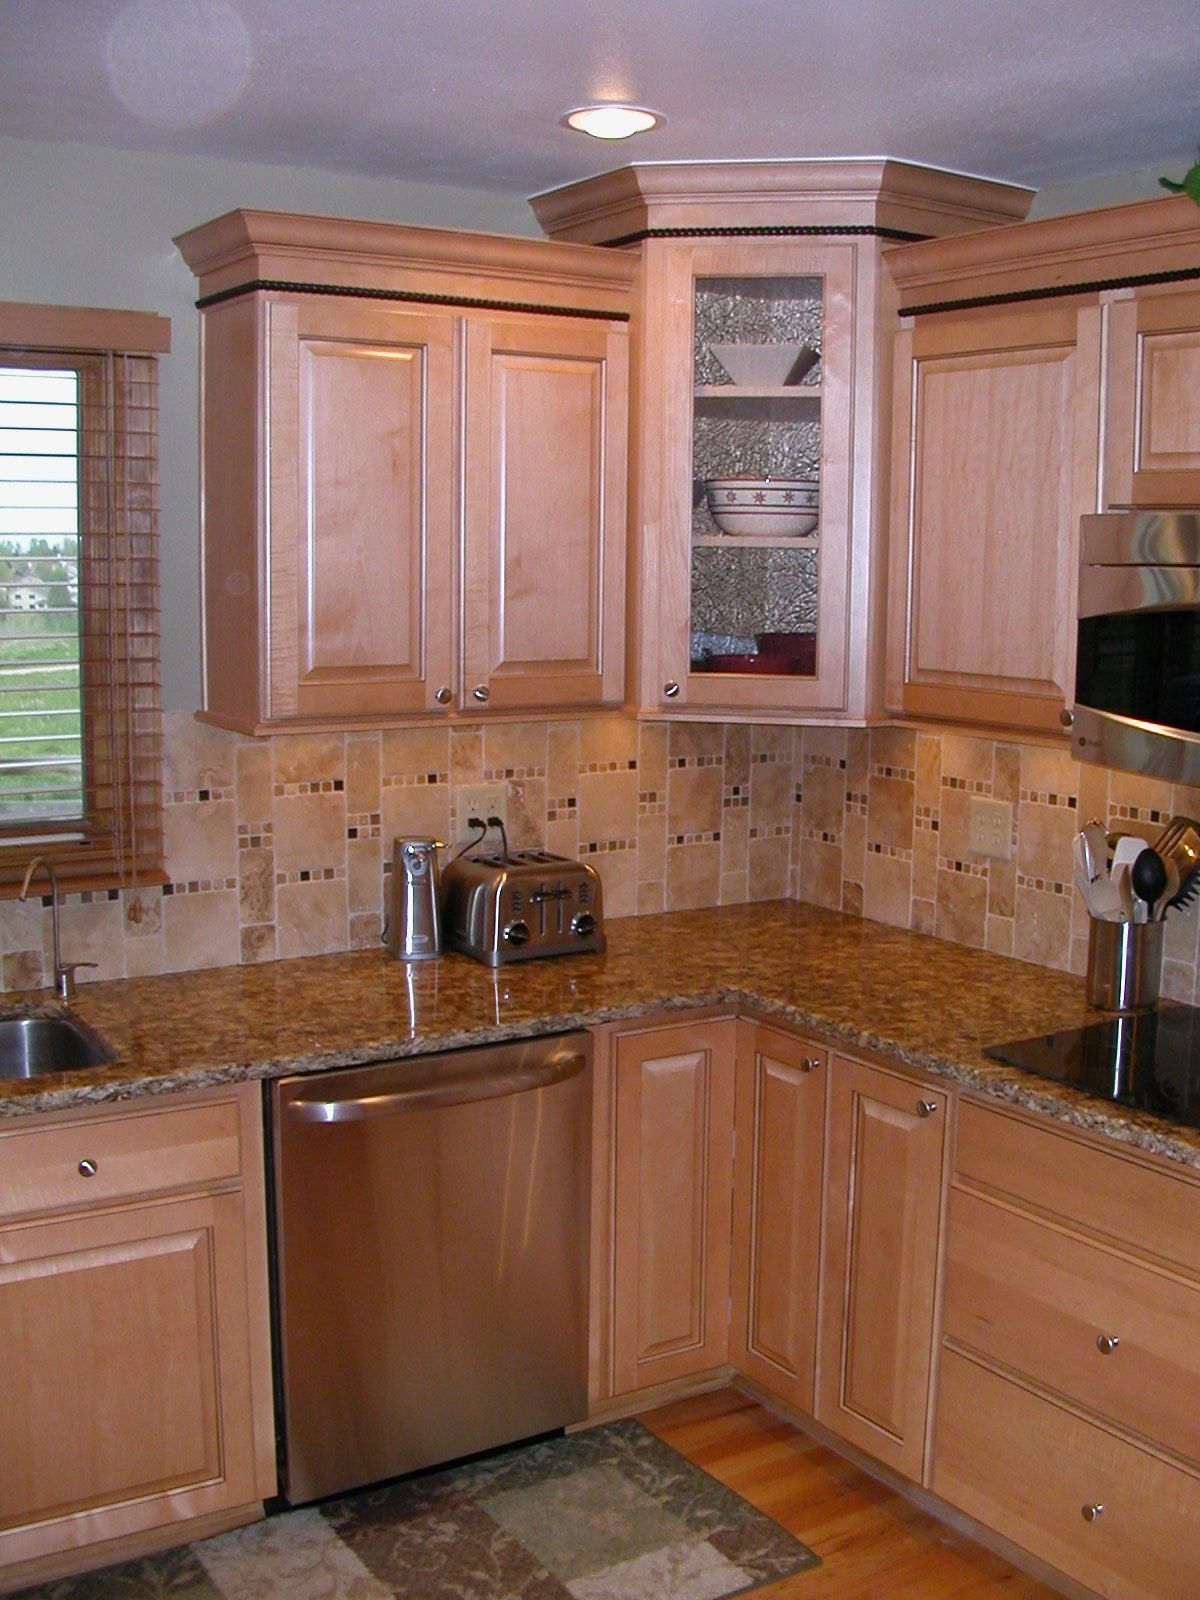 Remodeled kitchen in natural maple | Home decor kitchen ... on Natural Maple Cabinets  id=56736